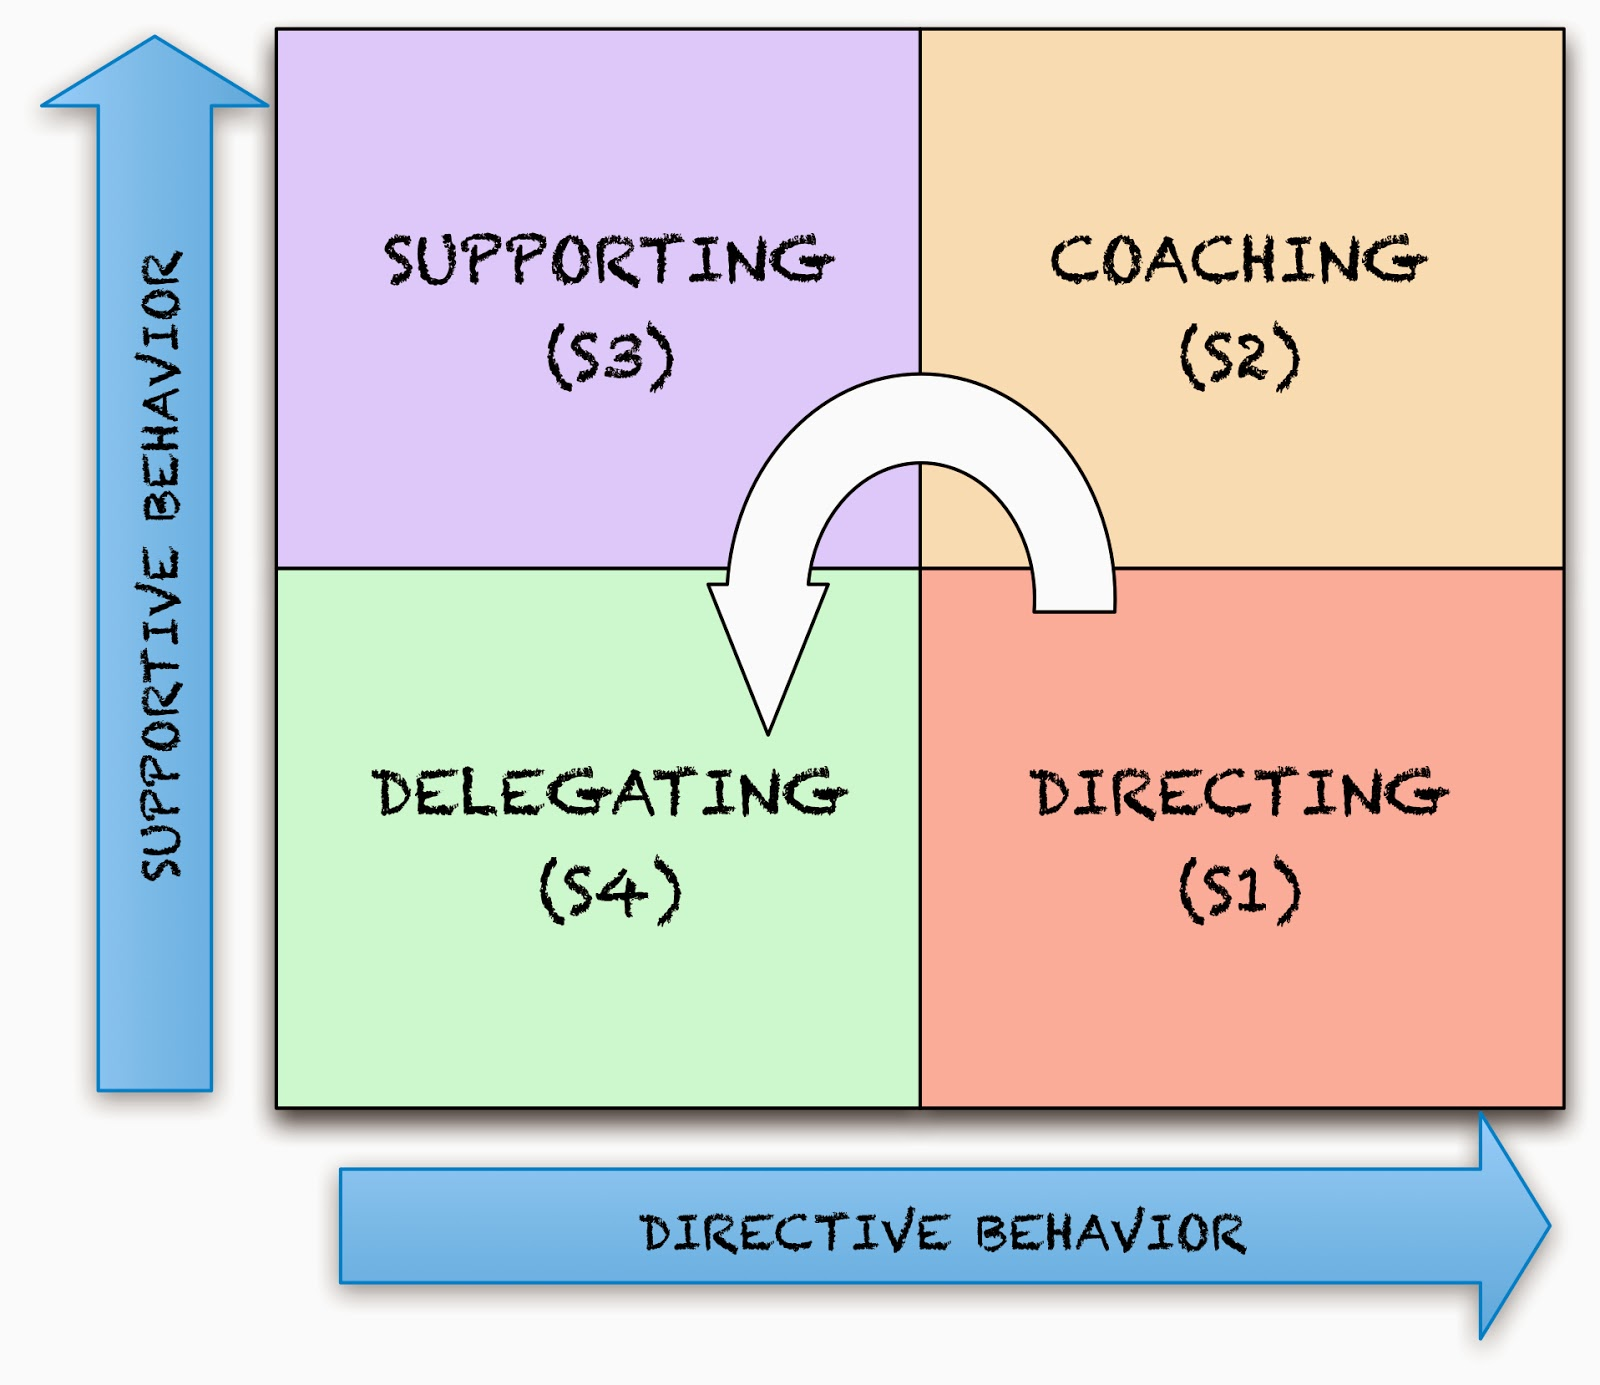 Situational Leadership Model Diagram Tracing Of Panel Wiring An Alternator Image Agile Game Development And The